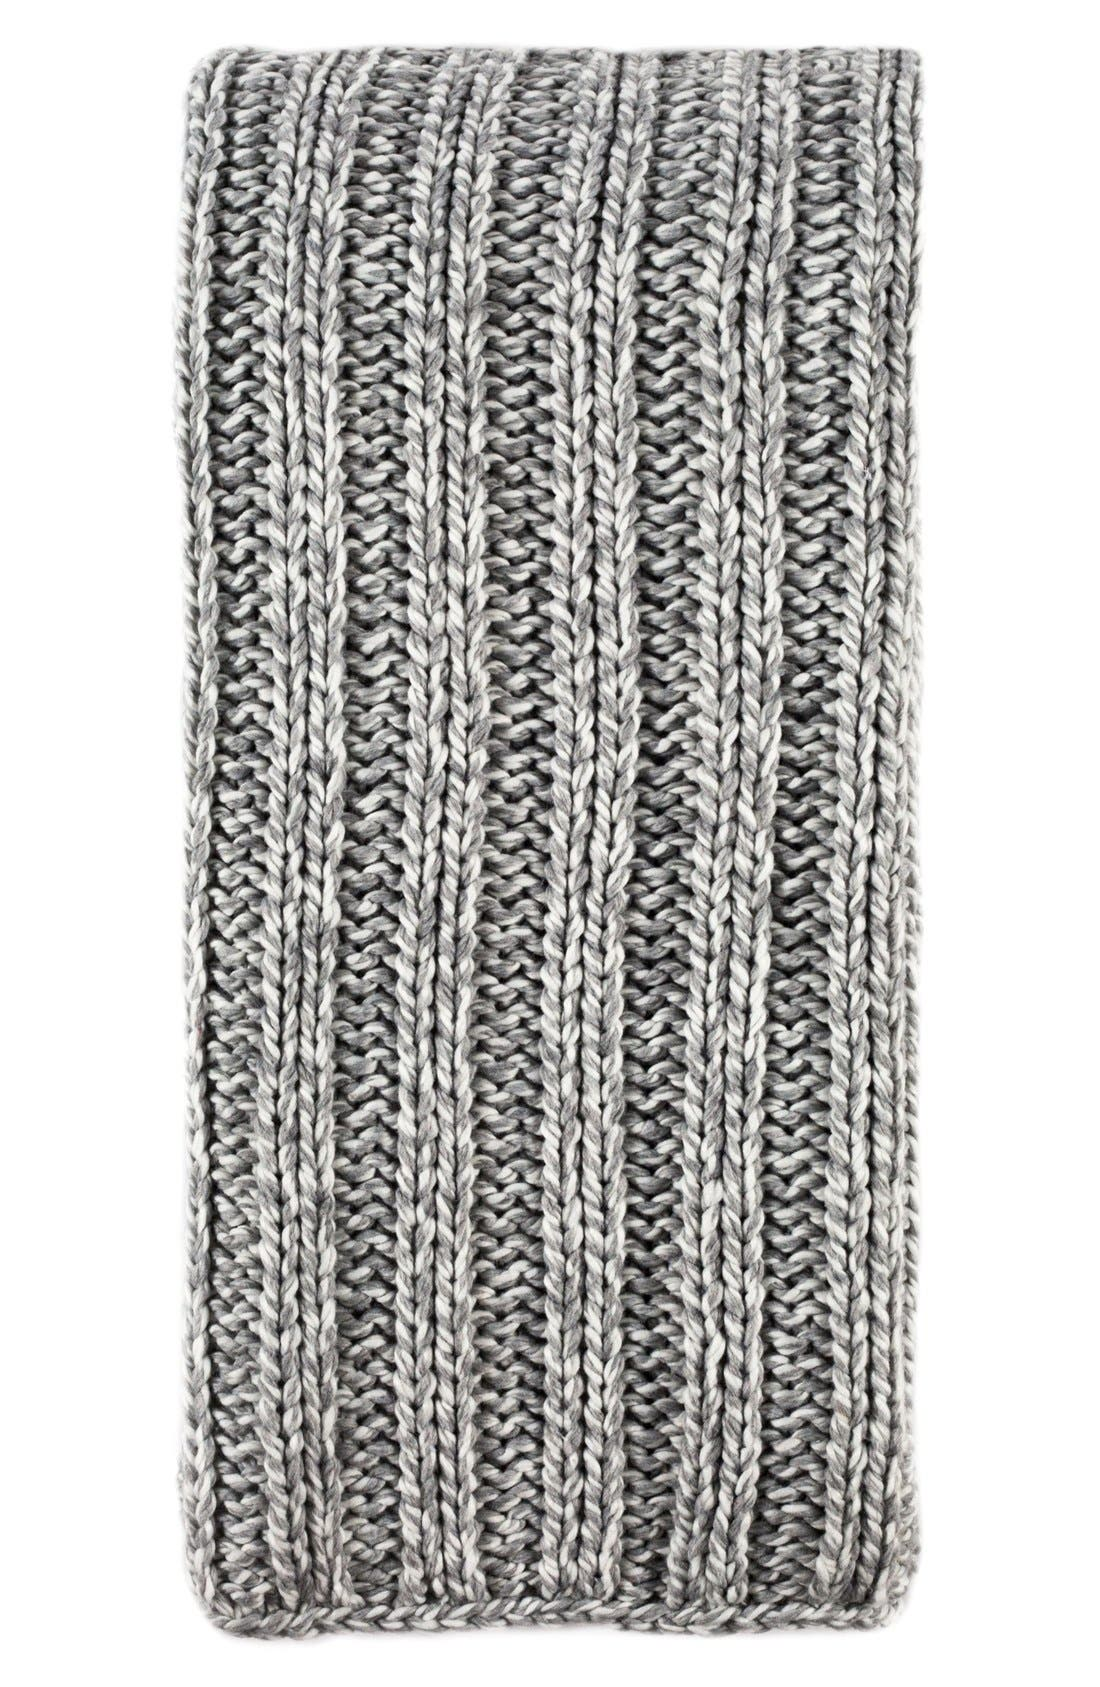 Main Image - Pom Pom at Home Sven Oversize Throw Blanket